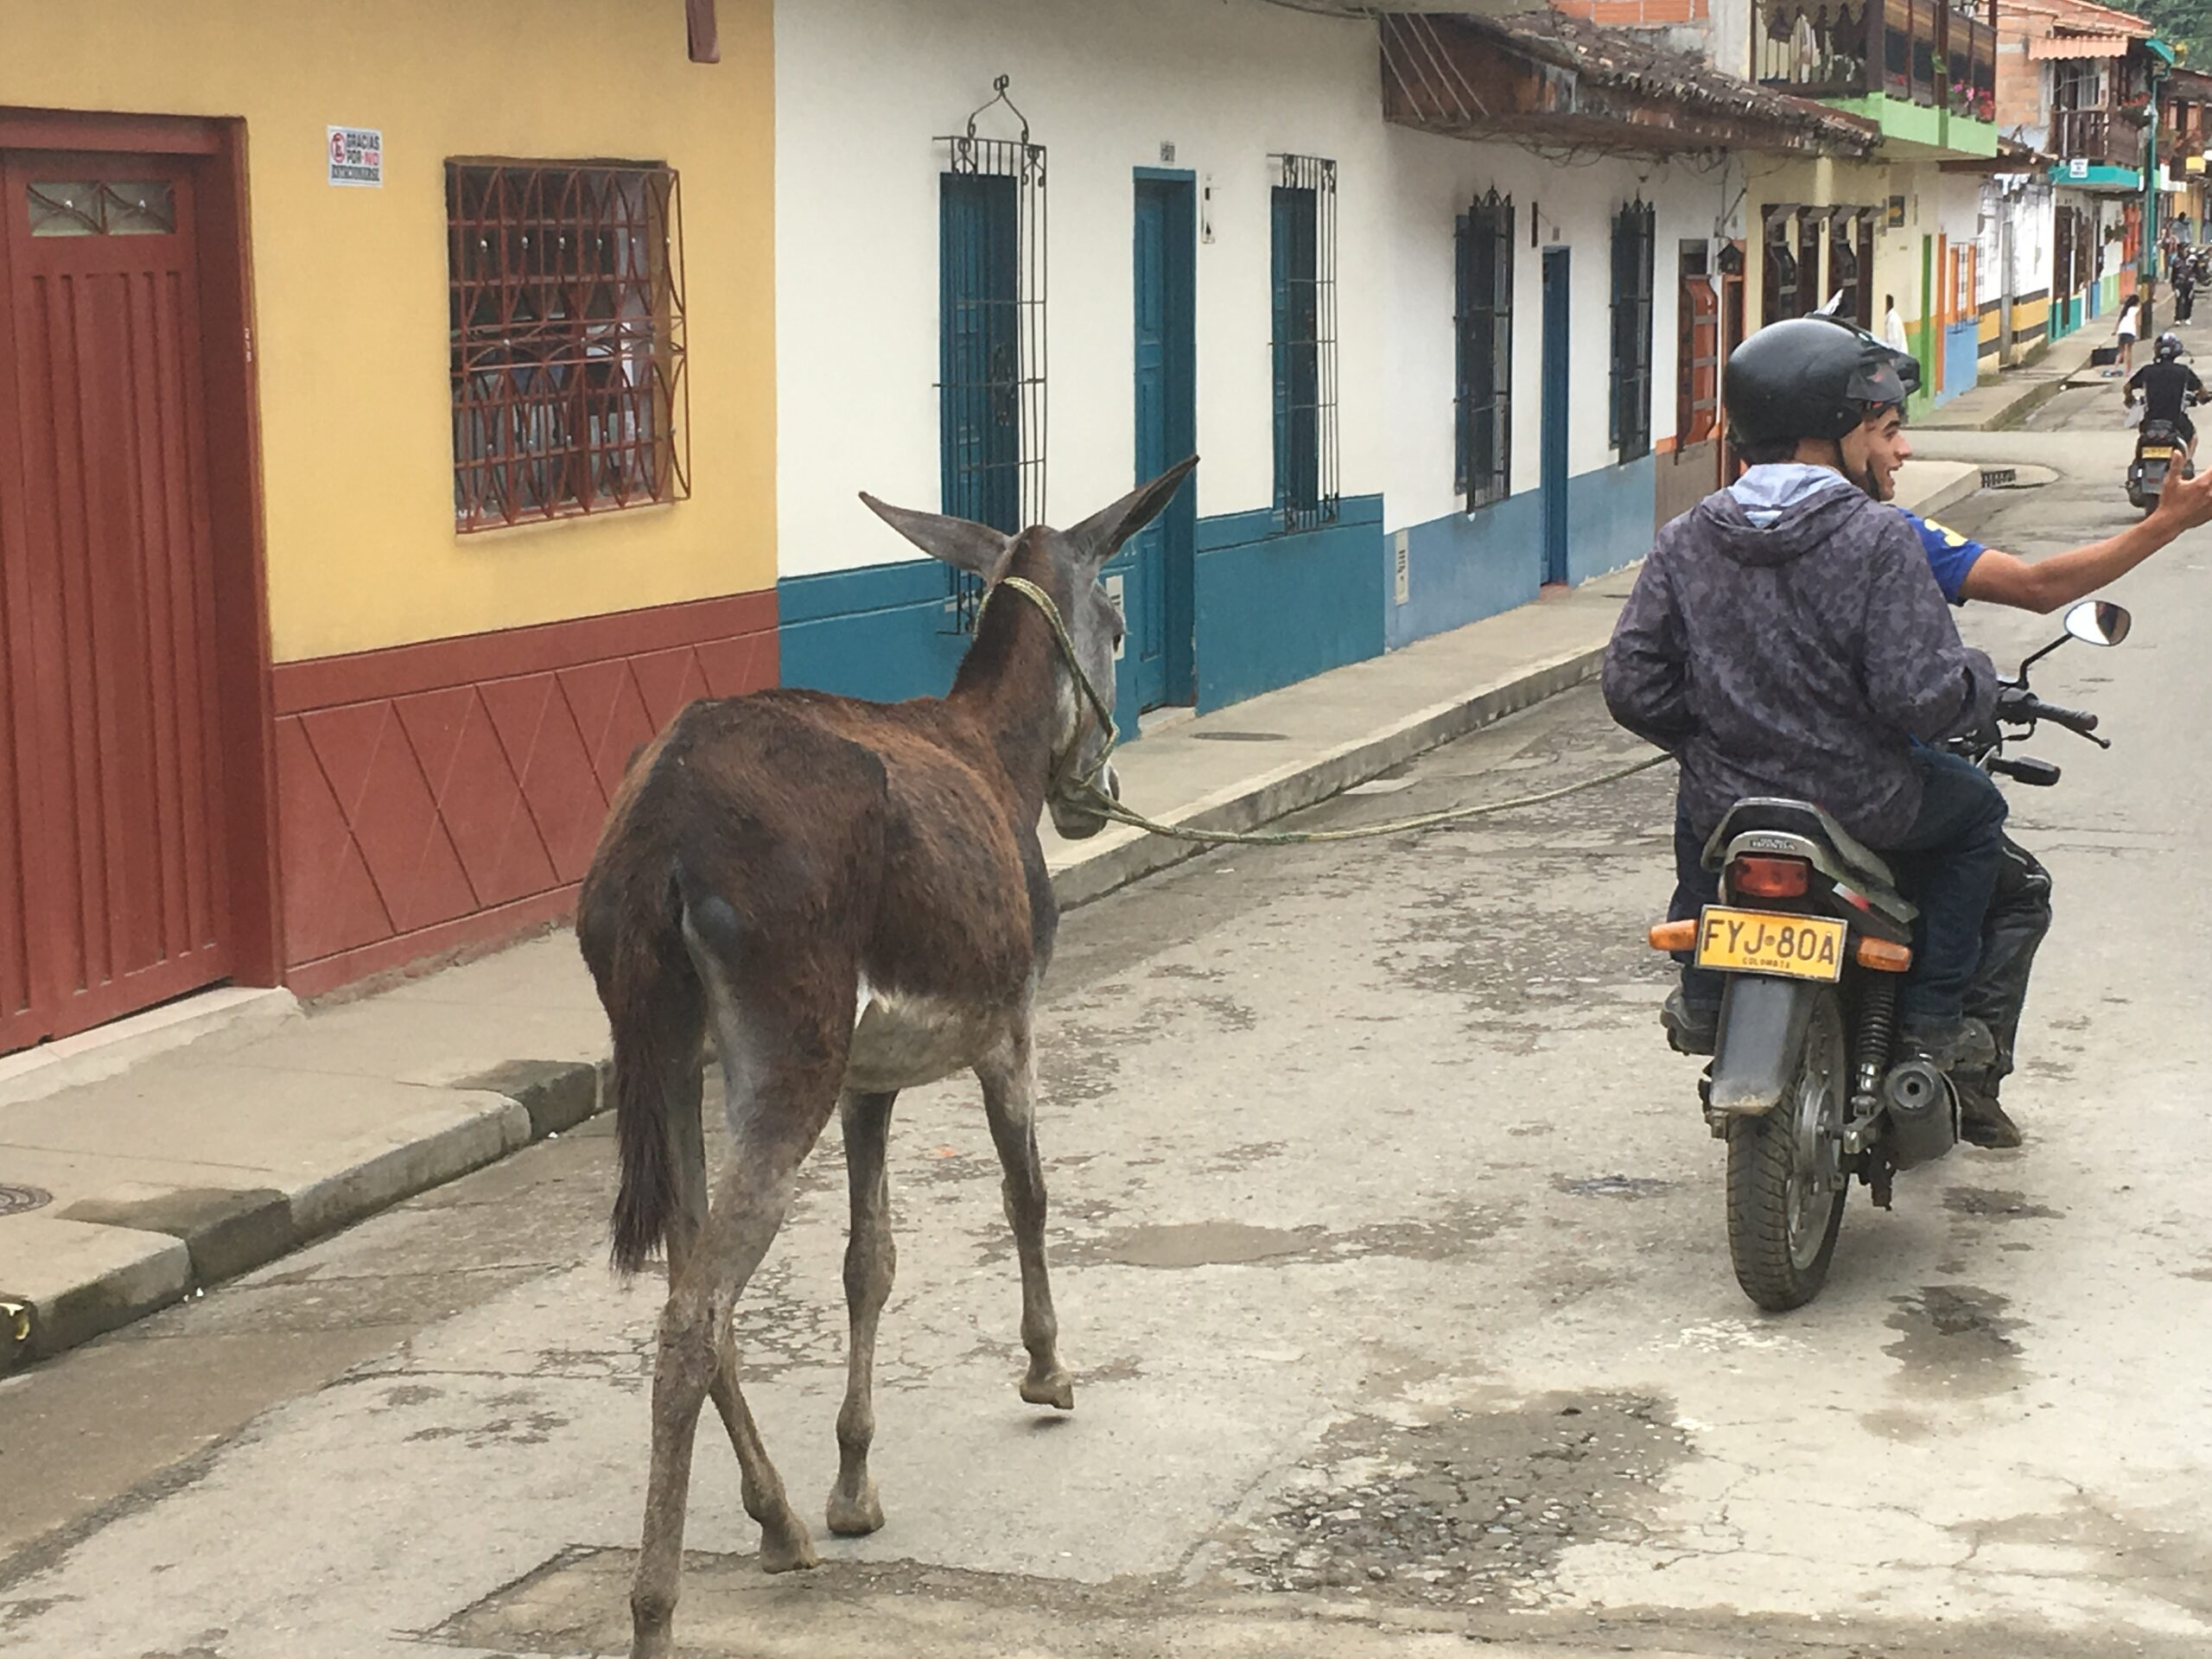 horses, donkeys, motorbikes - all kinds of transport in the town of Jardin